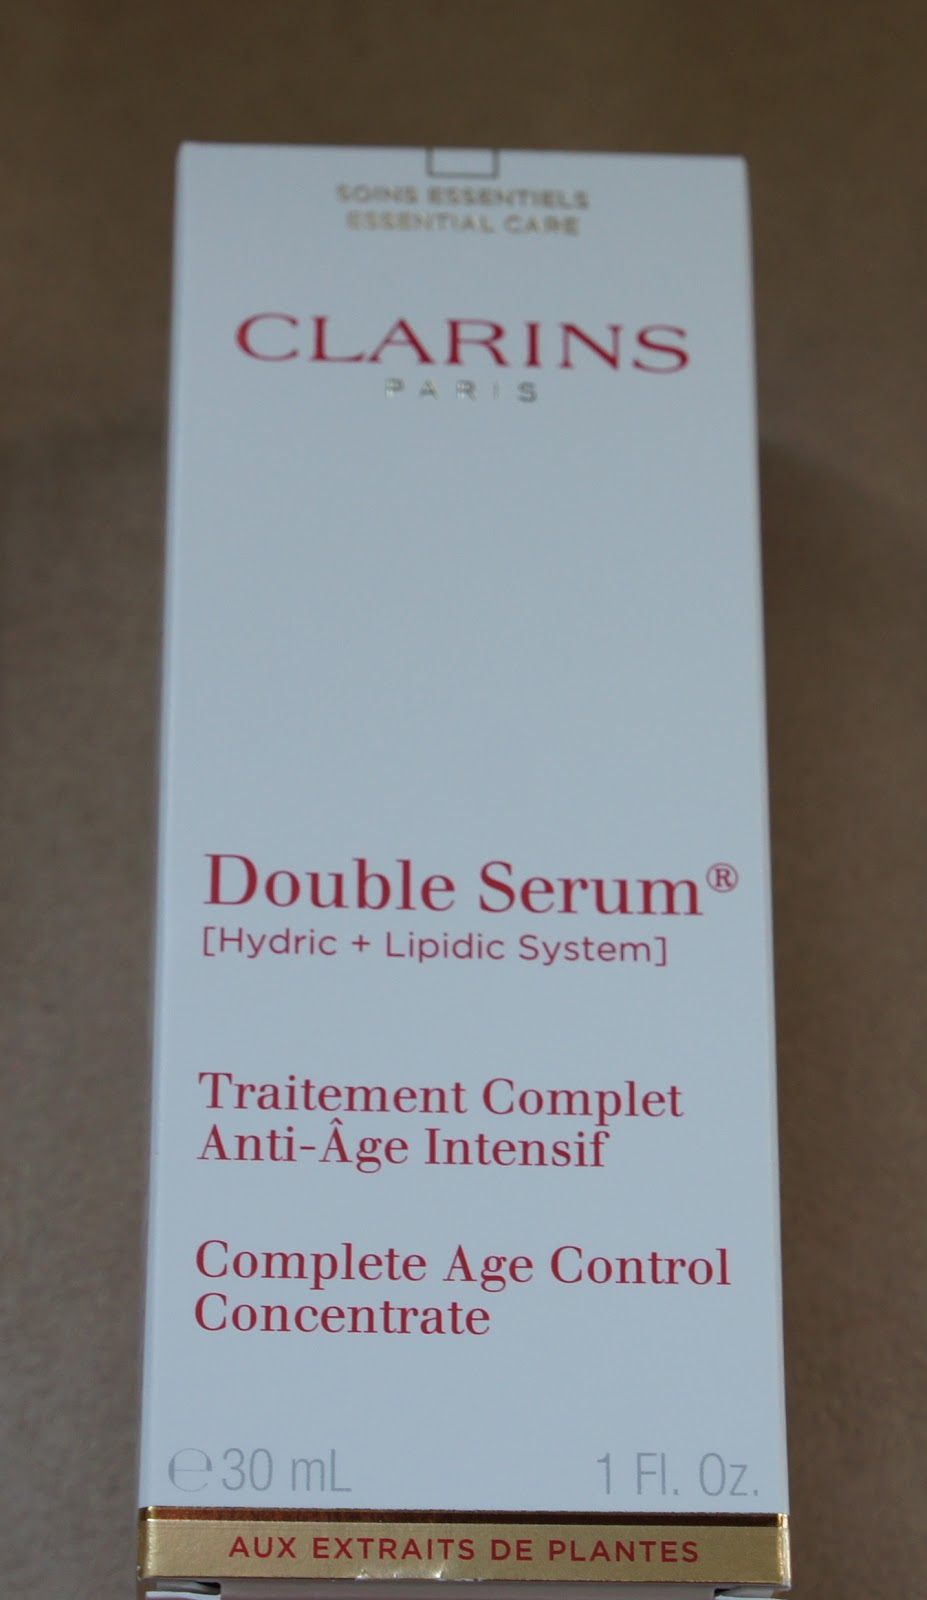 clarins double serum instructions